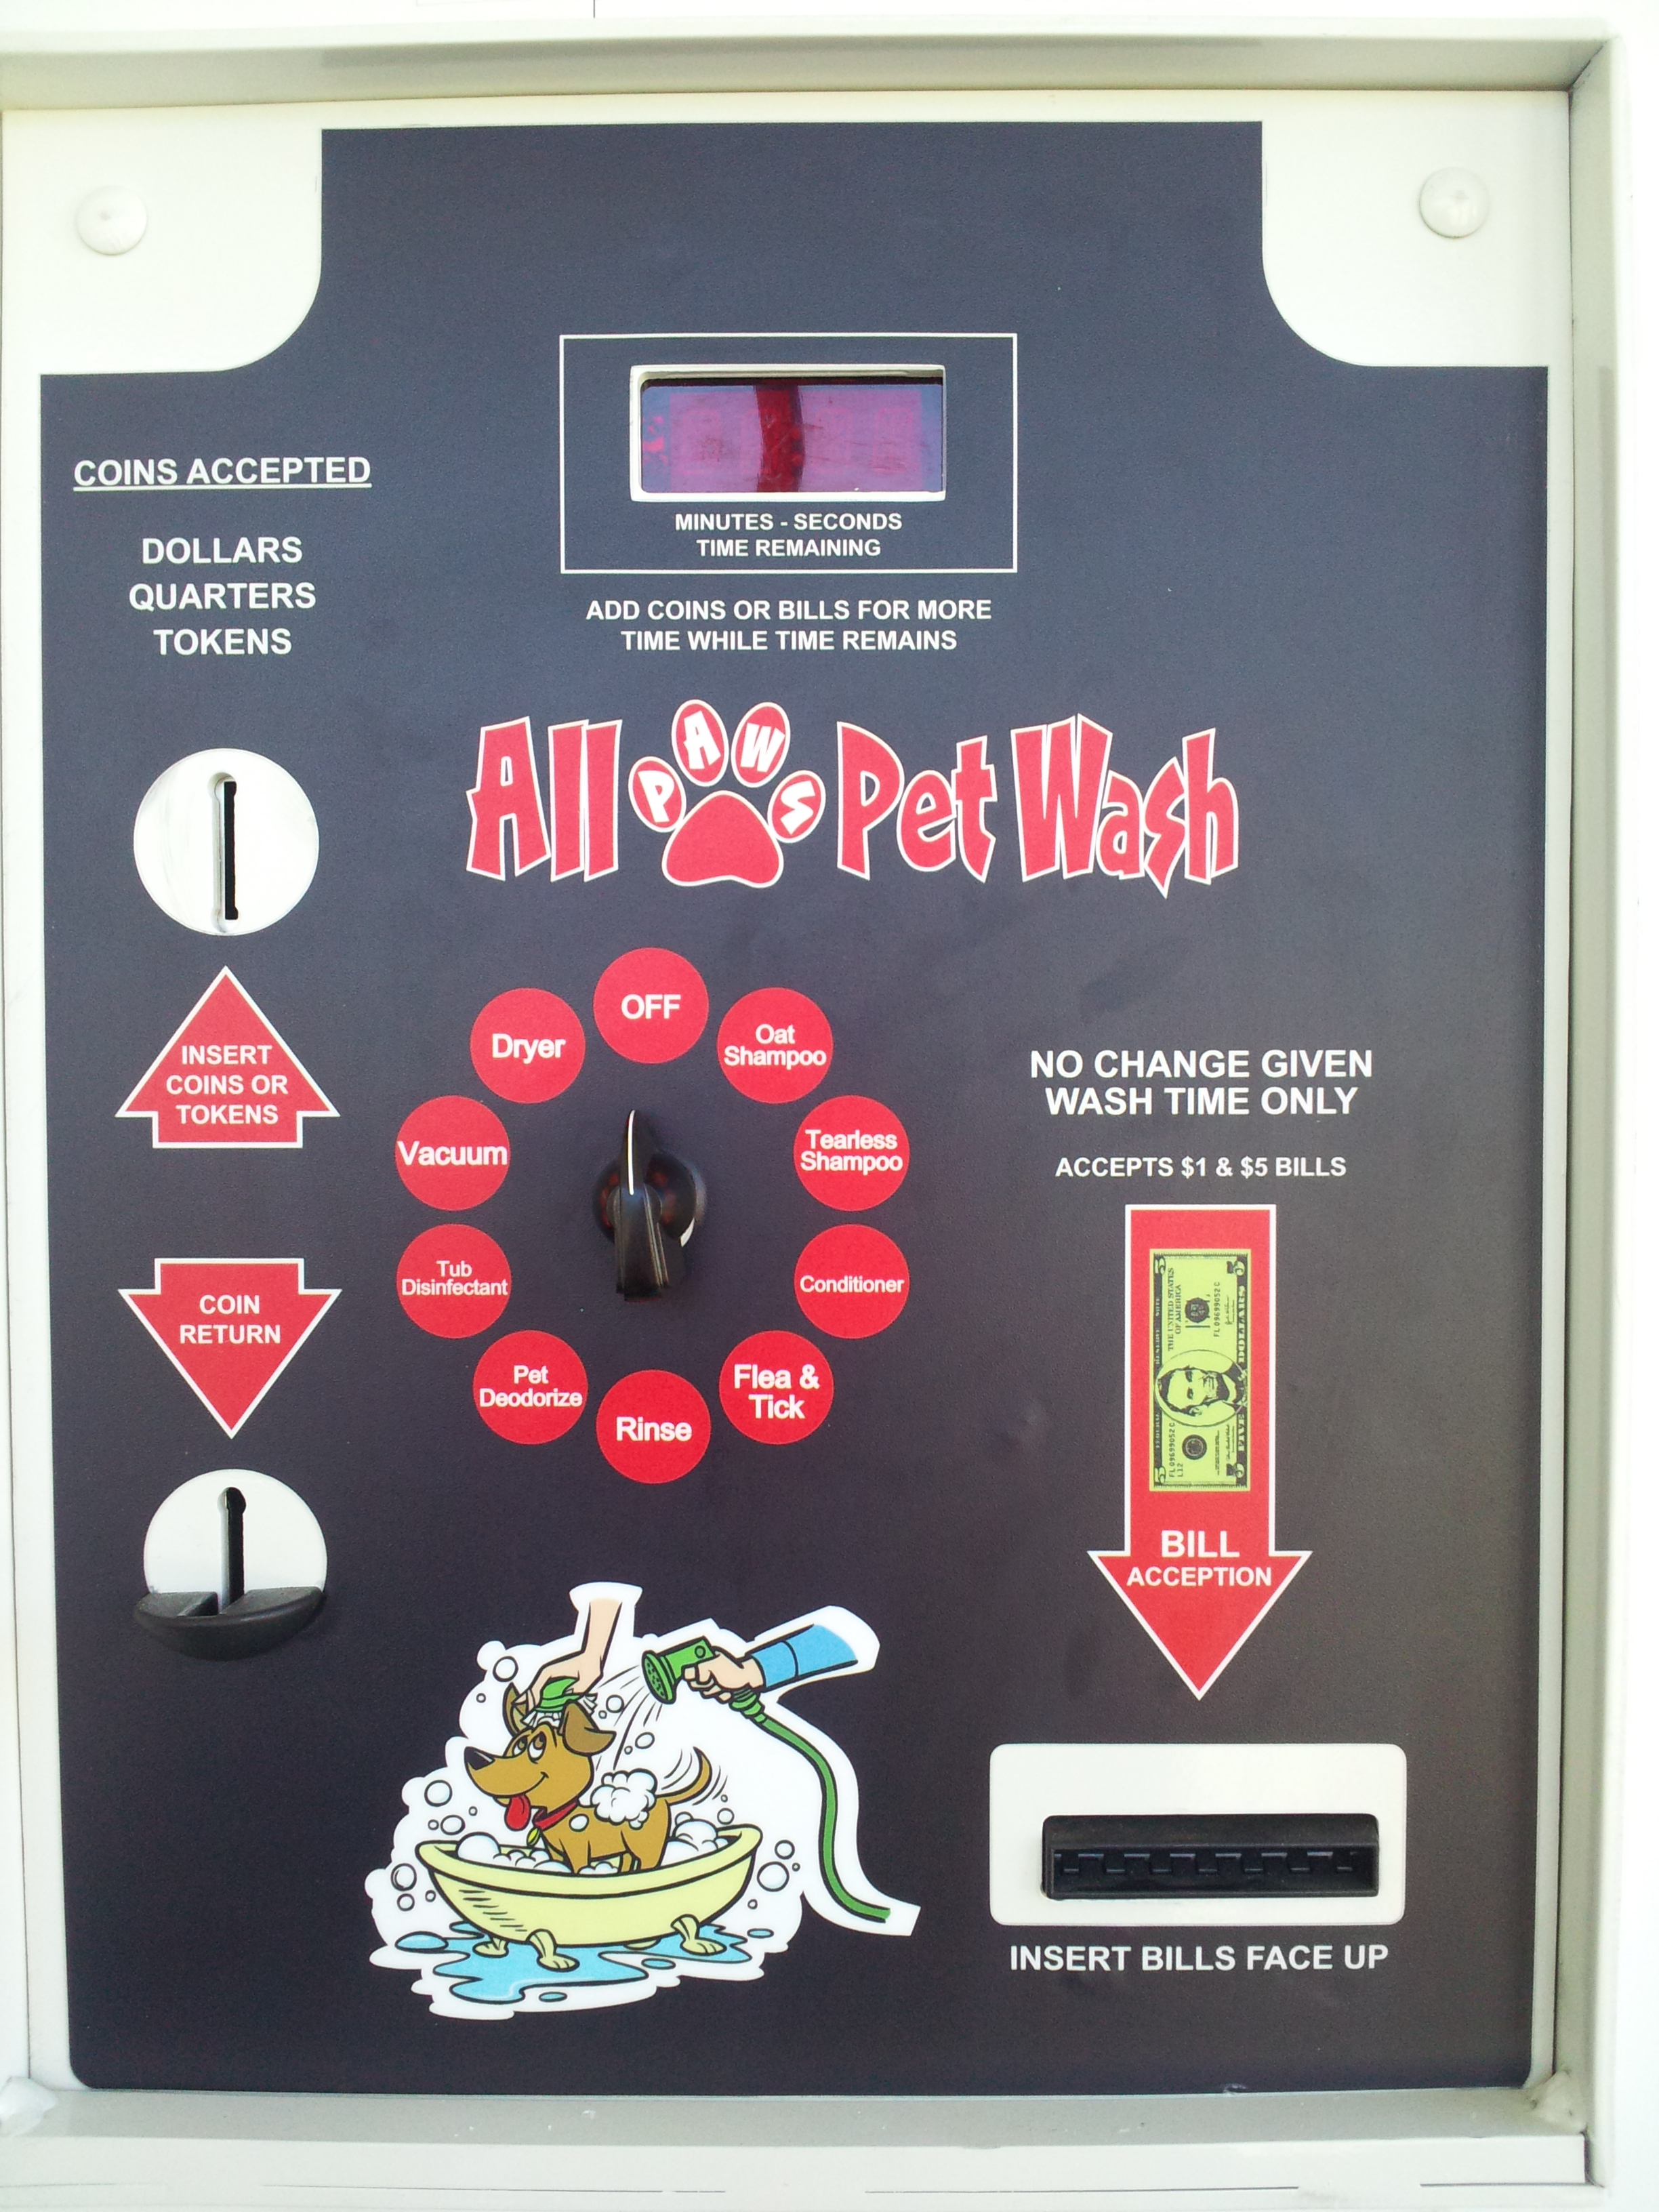 Coin operated pet wash dog bathing station all paws pet wash coin operated dog wash solutioingenieria Choice Image